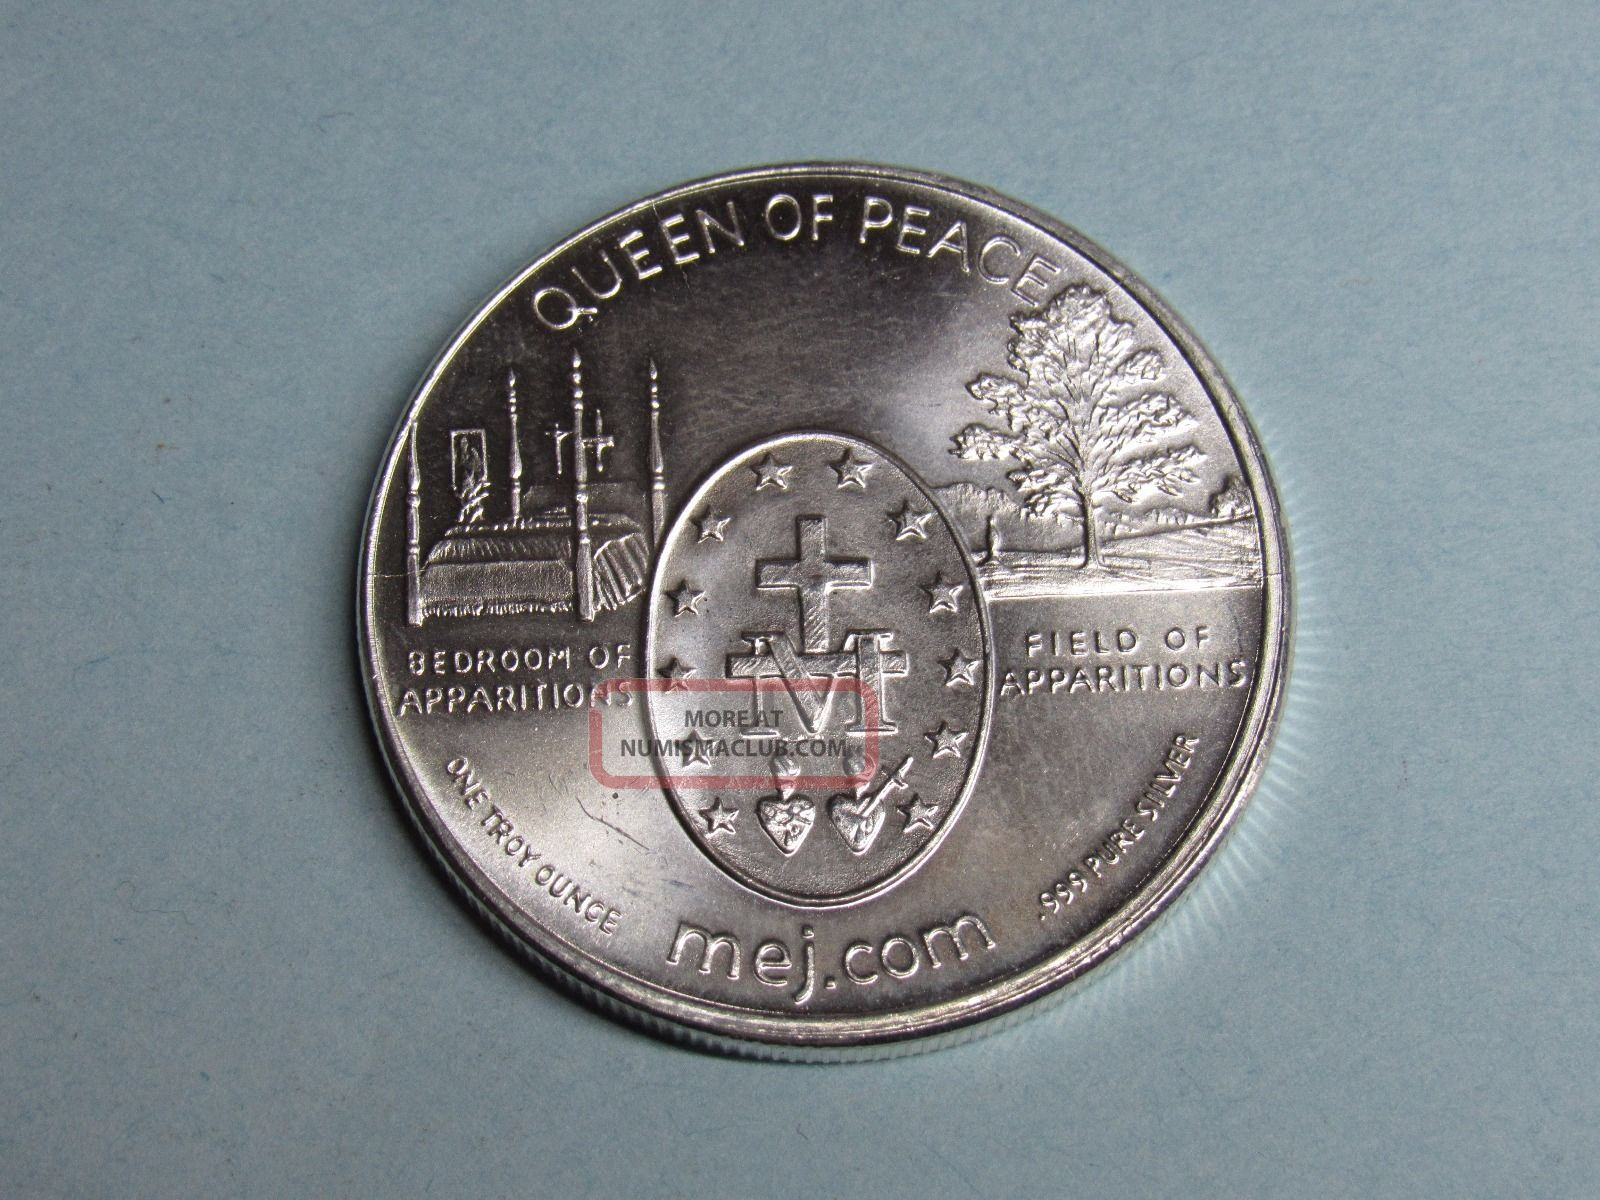 1 Troy Oz 999 Silver Art Round 2010 Queen Of Peace Cross